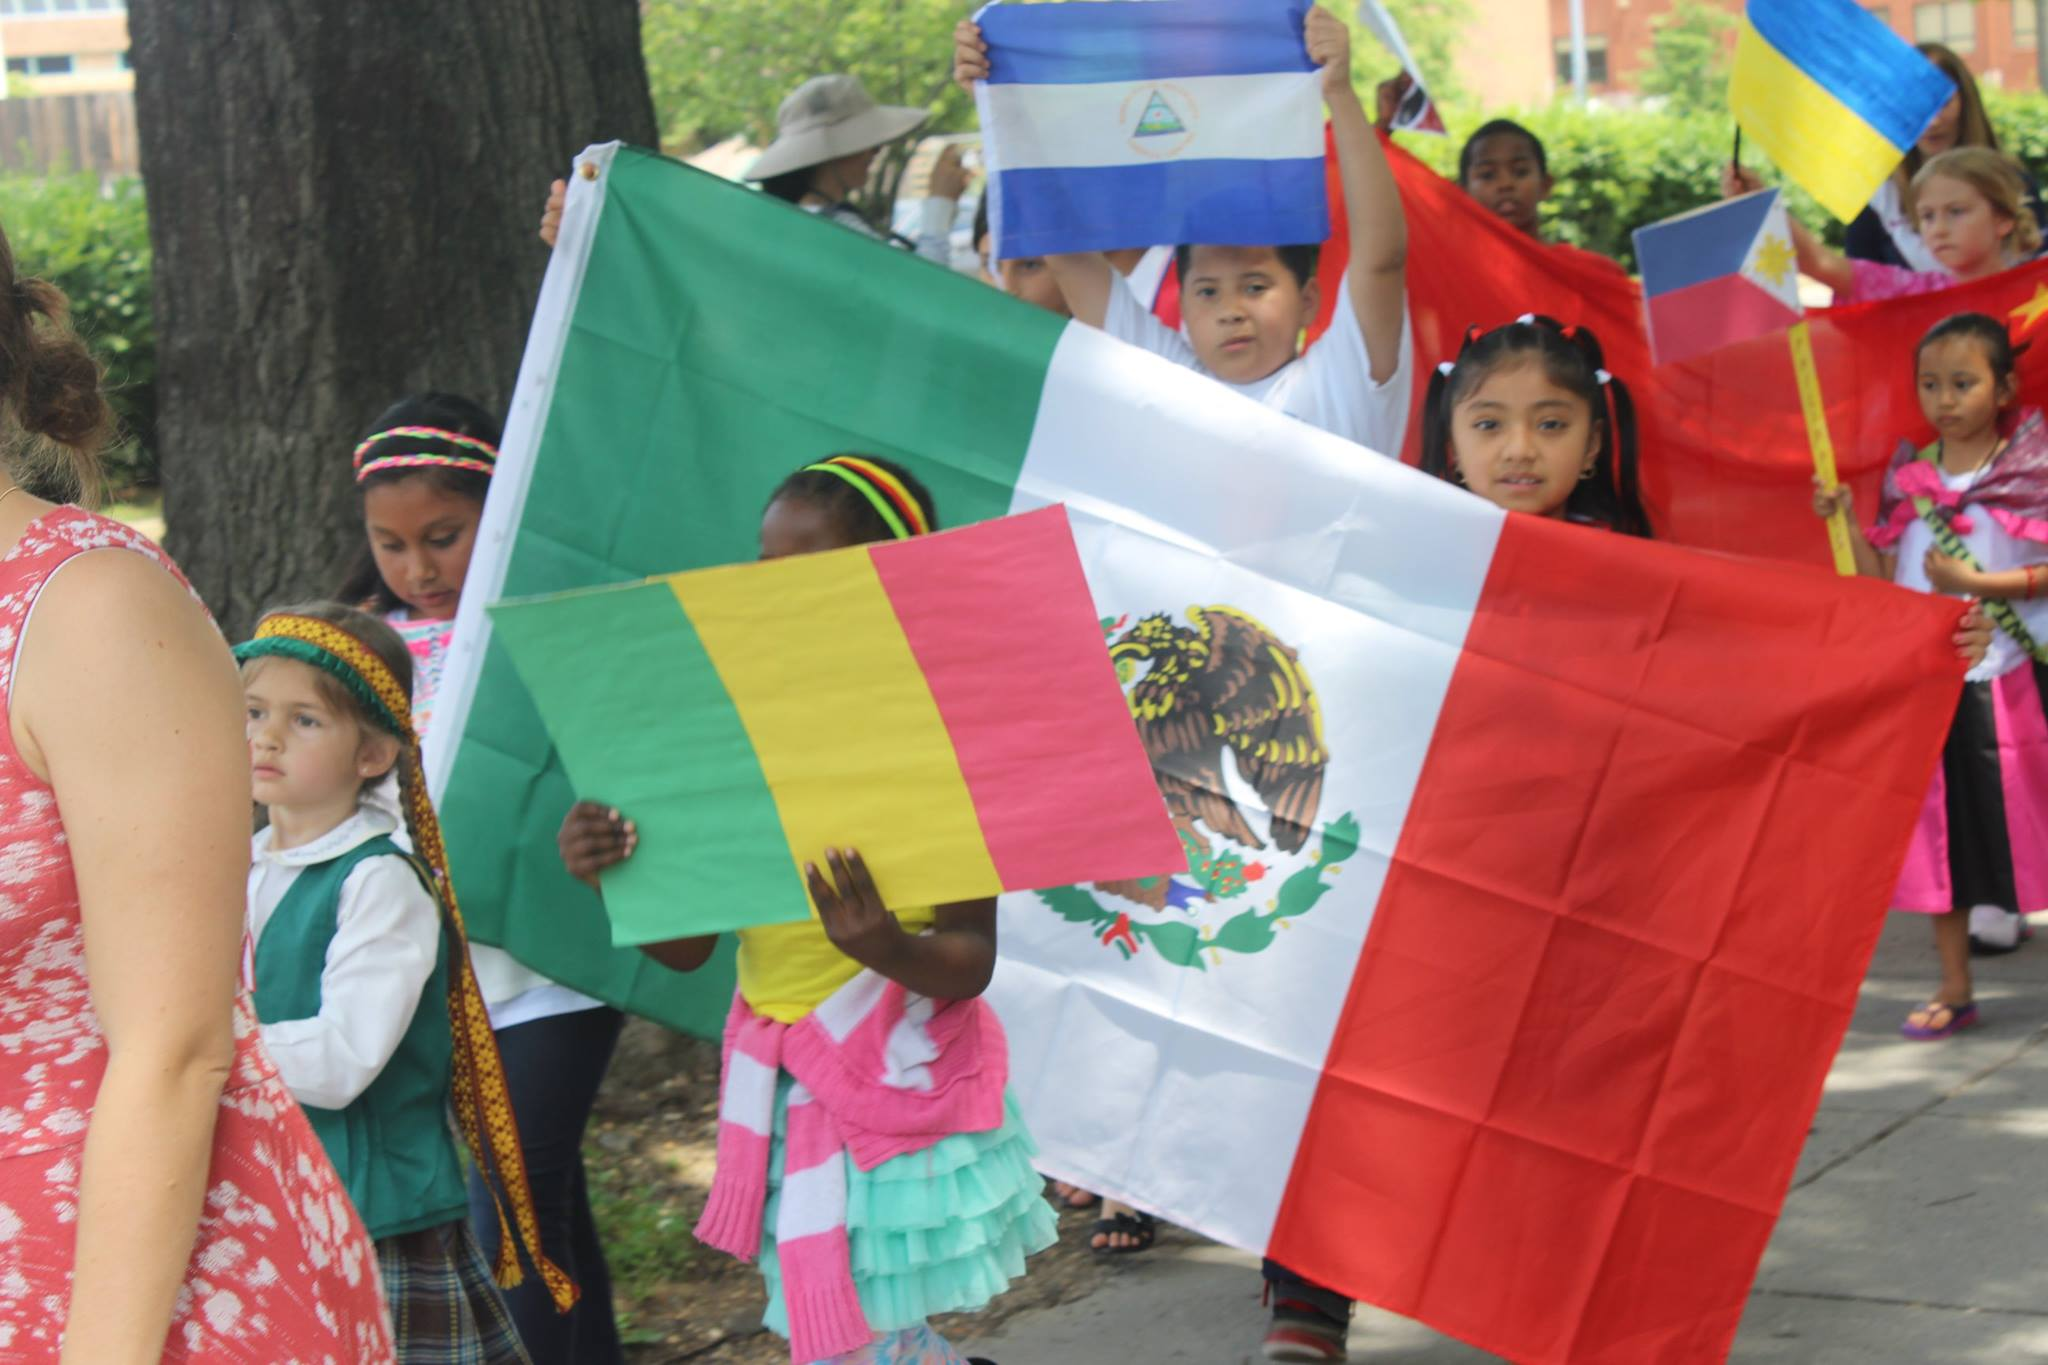 Students from Seaton Elementary walk in the Parade of Nations